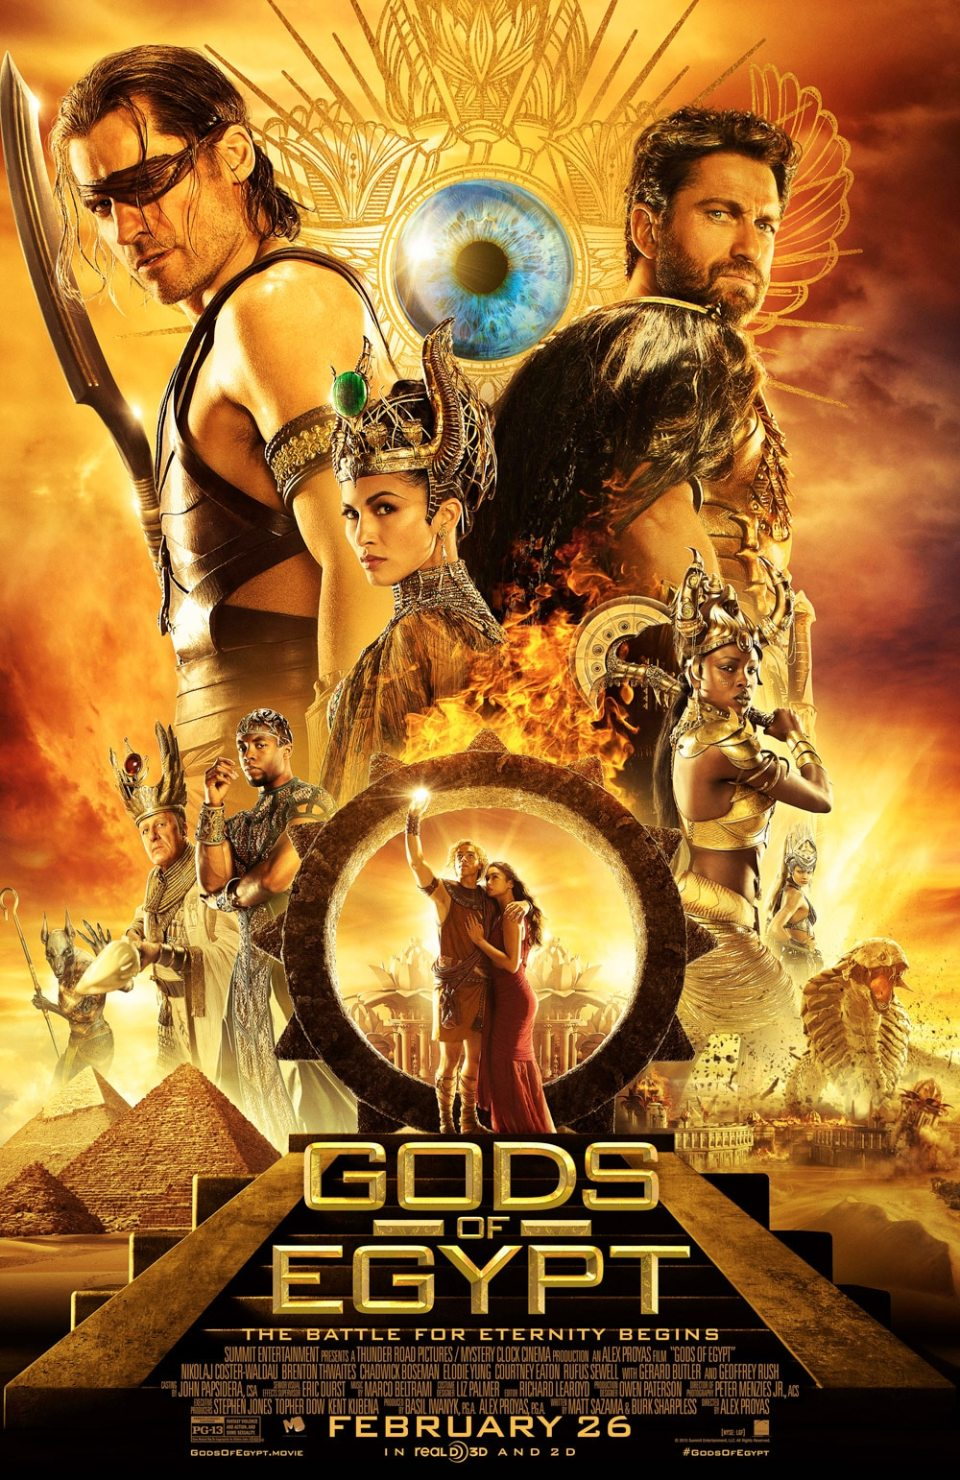 god of egypt.jpg?zoom=1 - Worship this Super Bowl TV Spot for Gods of Egypt